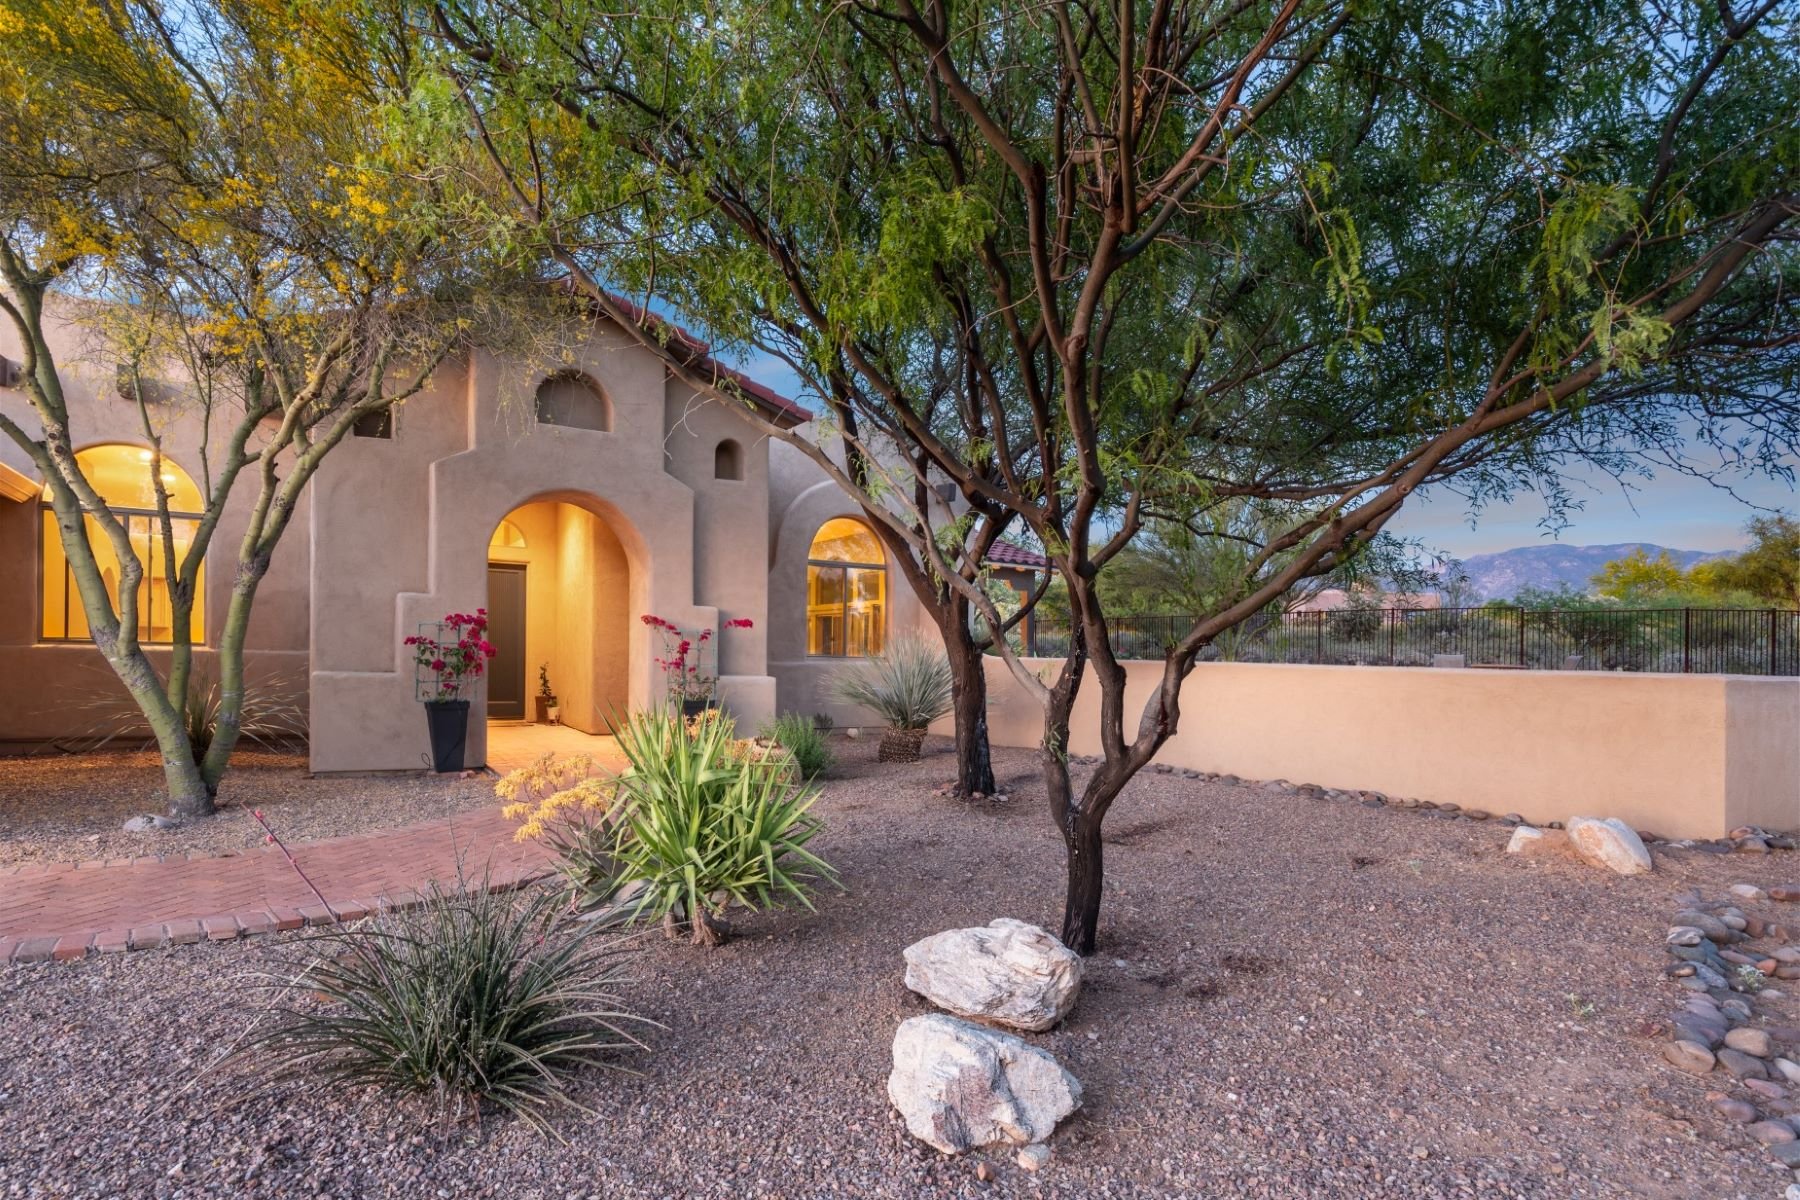 Single Family Homes for Sale at One of Oro Valley's Most Desirable Neighborhoods 12316 N Cloud Ridge Drive Oro Valley, Arizona 85755 United States